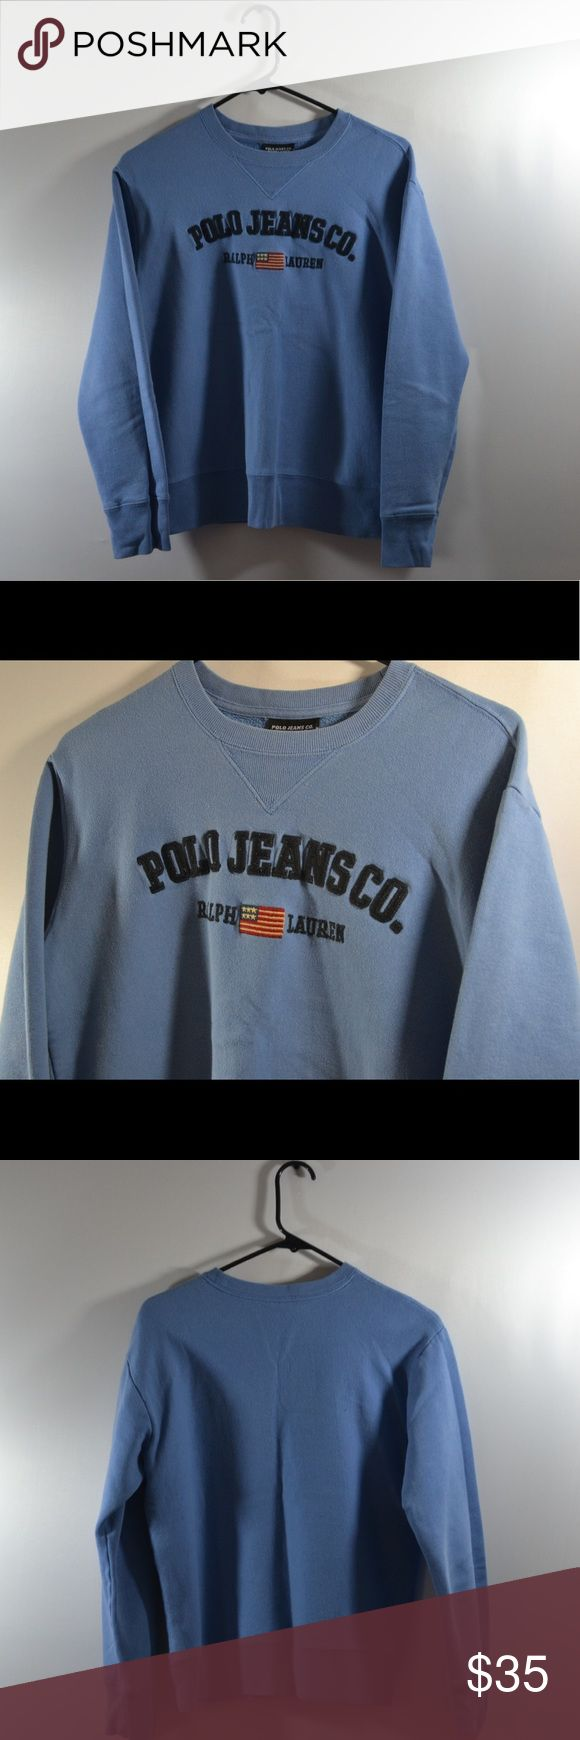 "VTG Polo Ralph Lauren Sweatshirt Size Small VTG Baby Blue Polo Ralph Lauren Sweatshirt Size Small 80%Cotton,20%Polyester Made In Indonesia. Chest:19"",Length:23"",Sleeve:21"" Polo by Ralph Lauren Tops Sweatshirts & Hoodies"